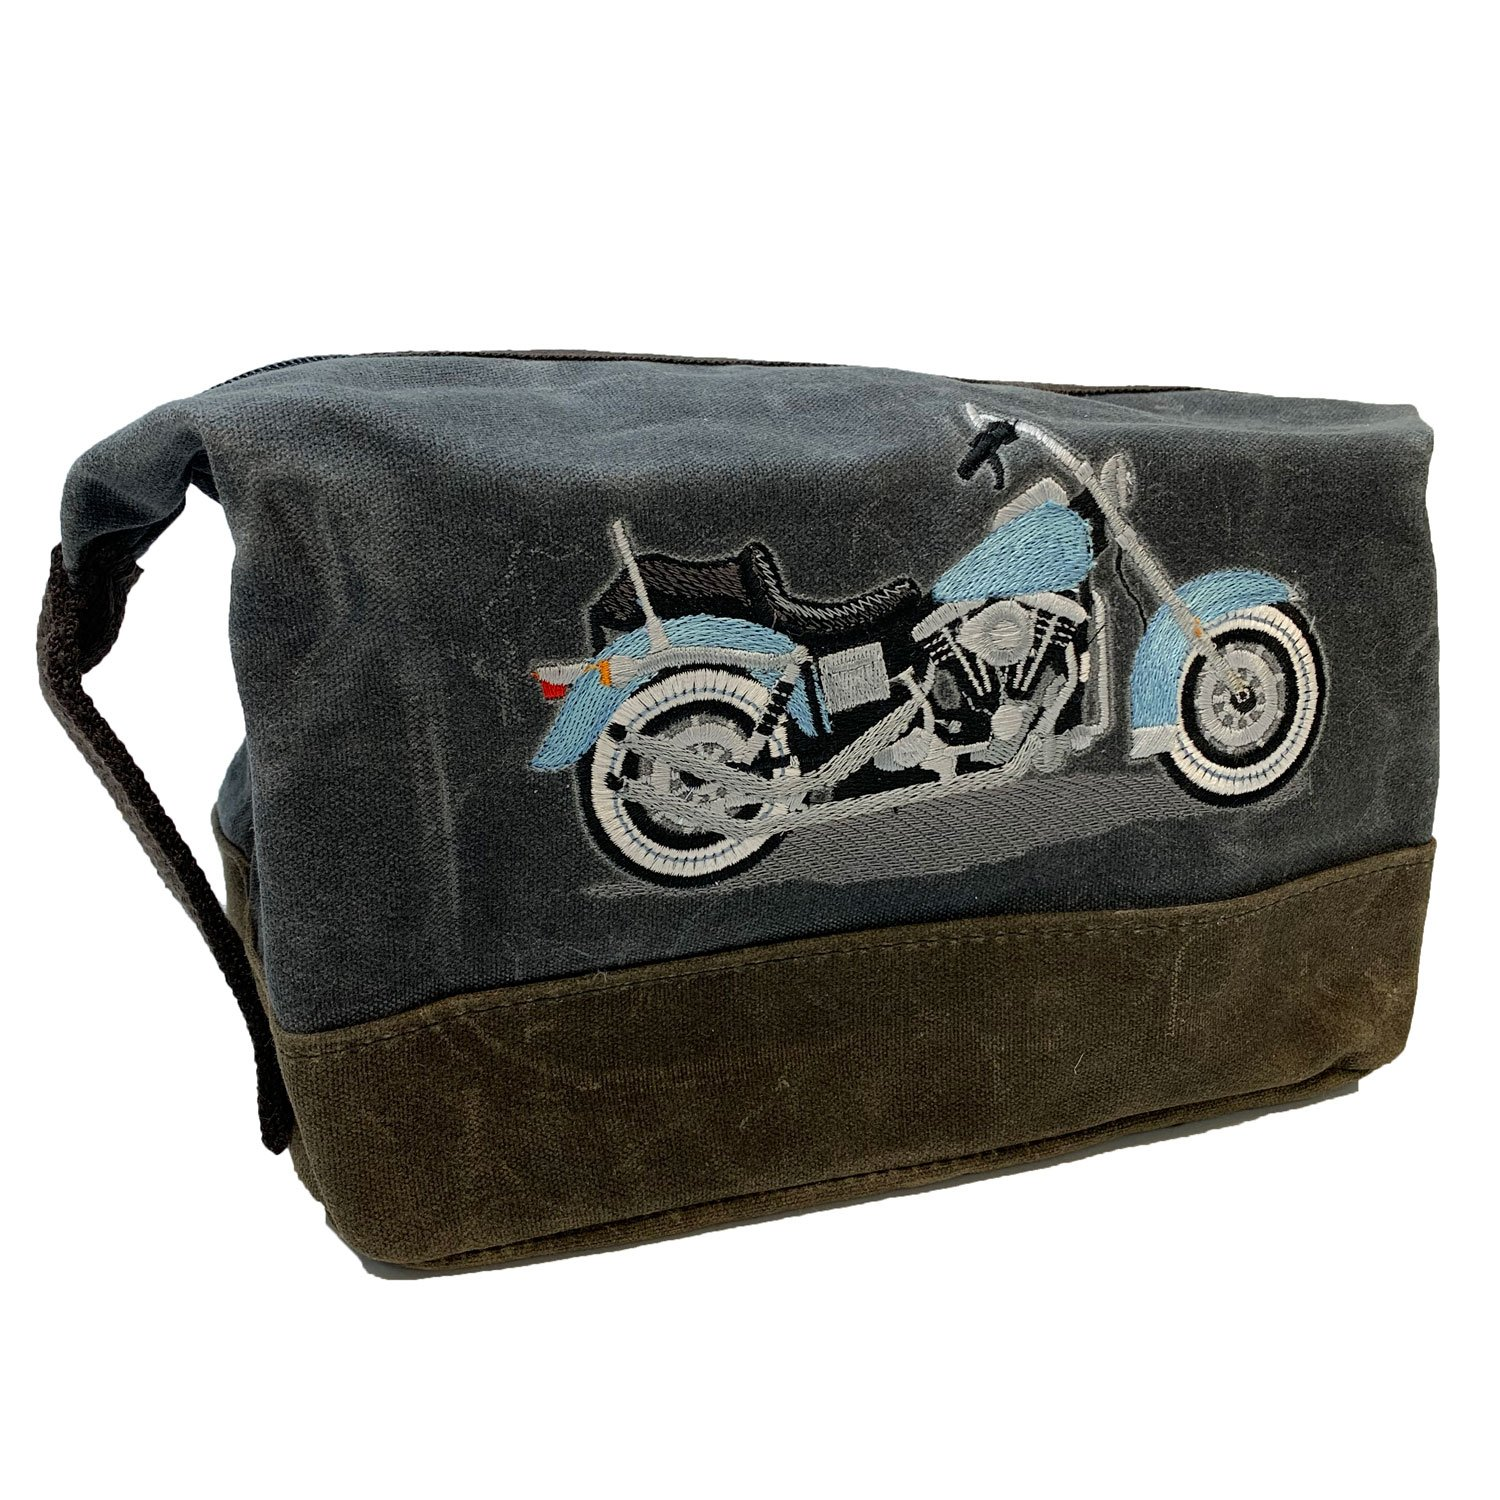 Embroidered Waxed Canvas Bag Easy Rider Motorcycle